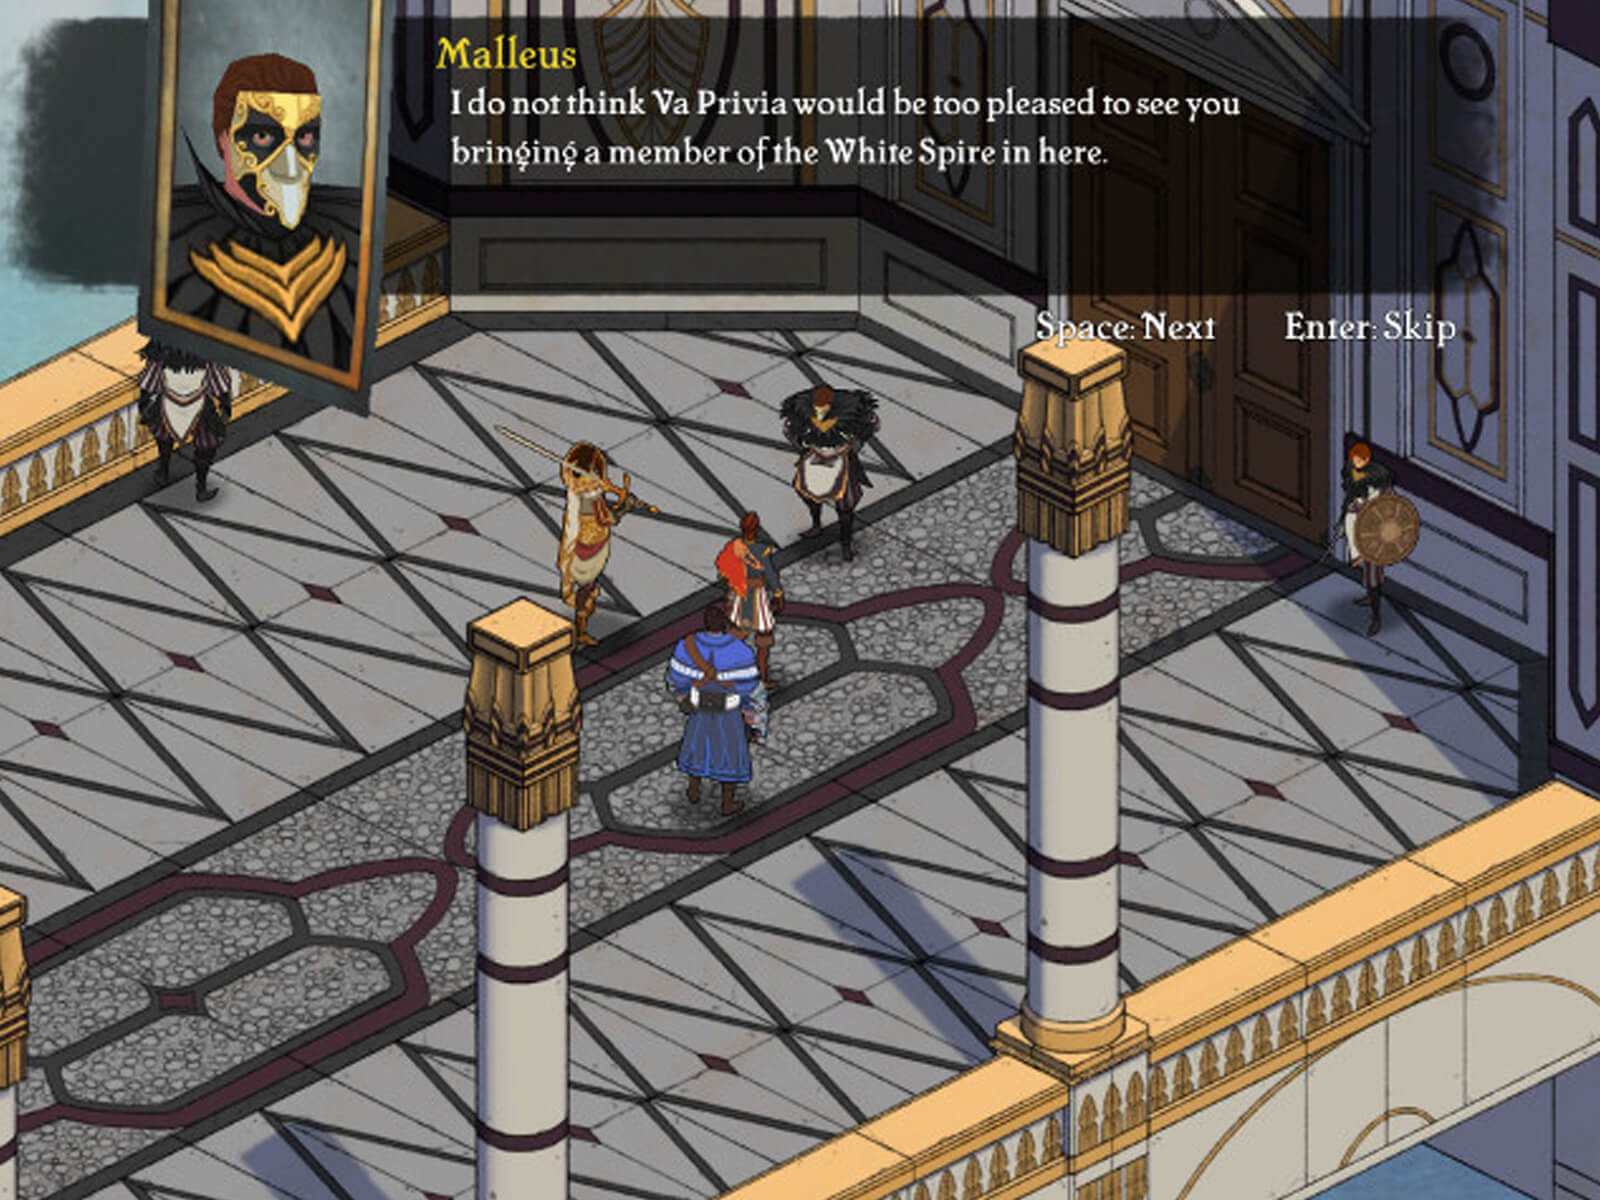 Screenshot of Masquerada in isometric view, with a headshot of a character and his speech bar across the top of the screen